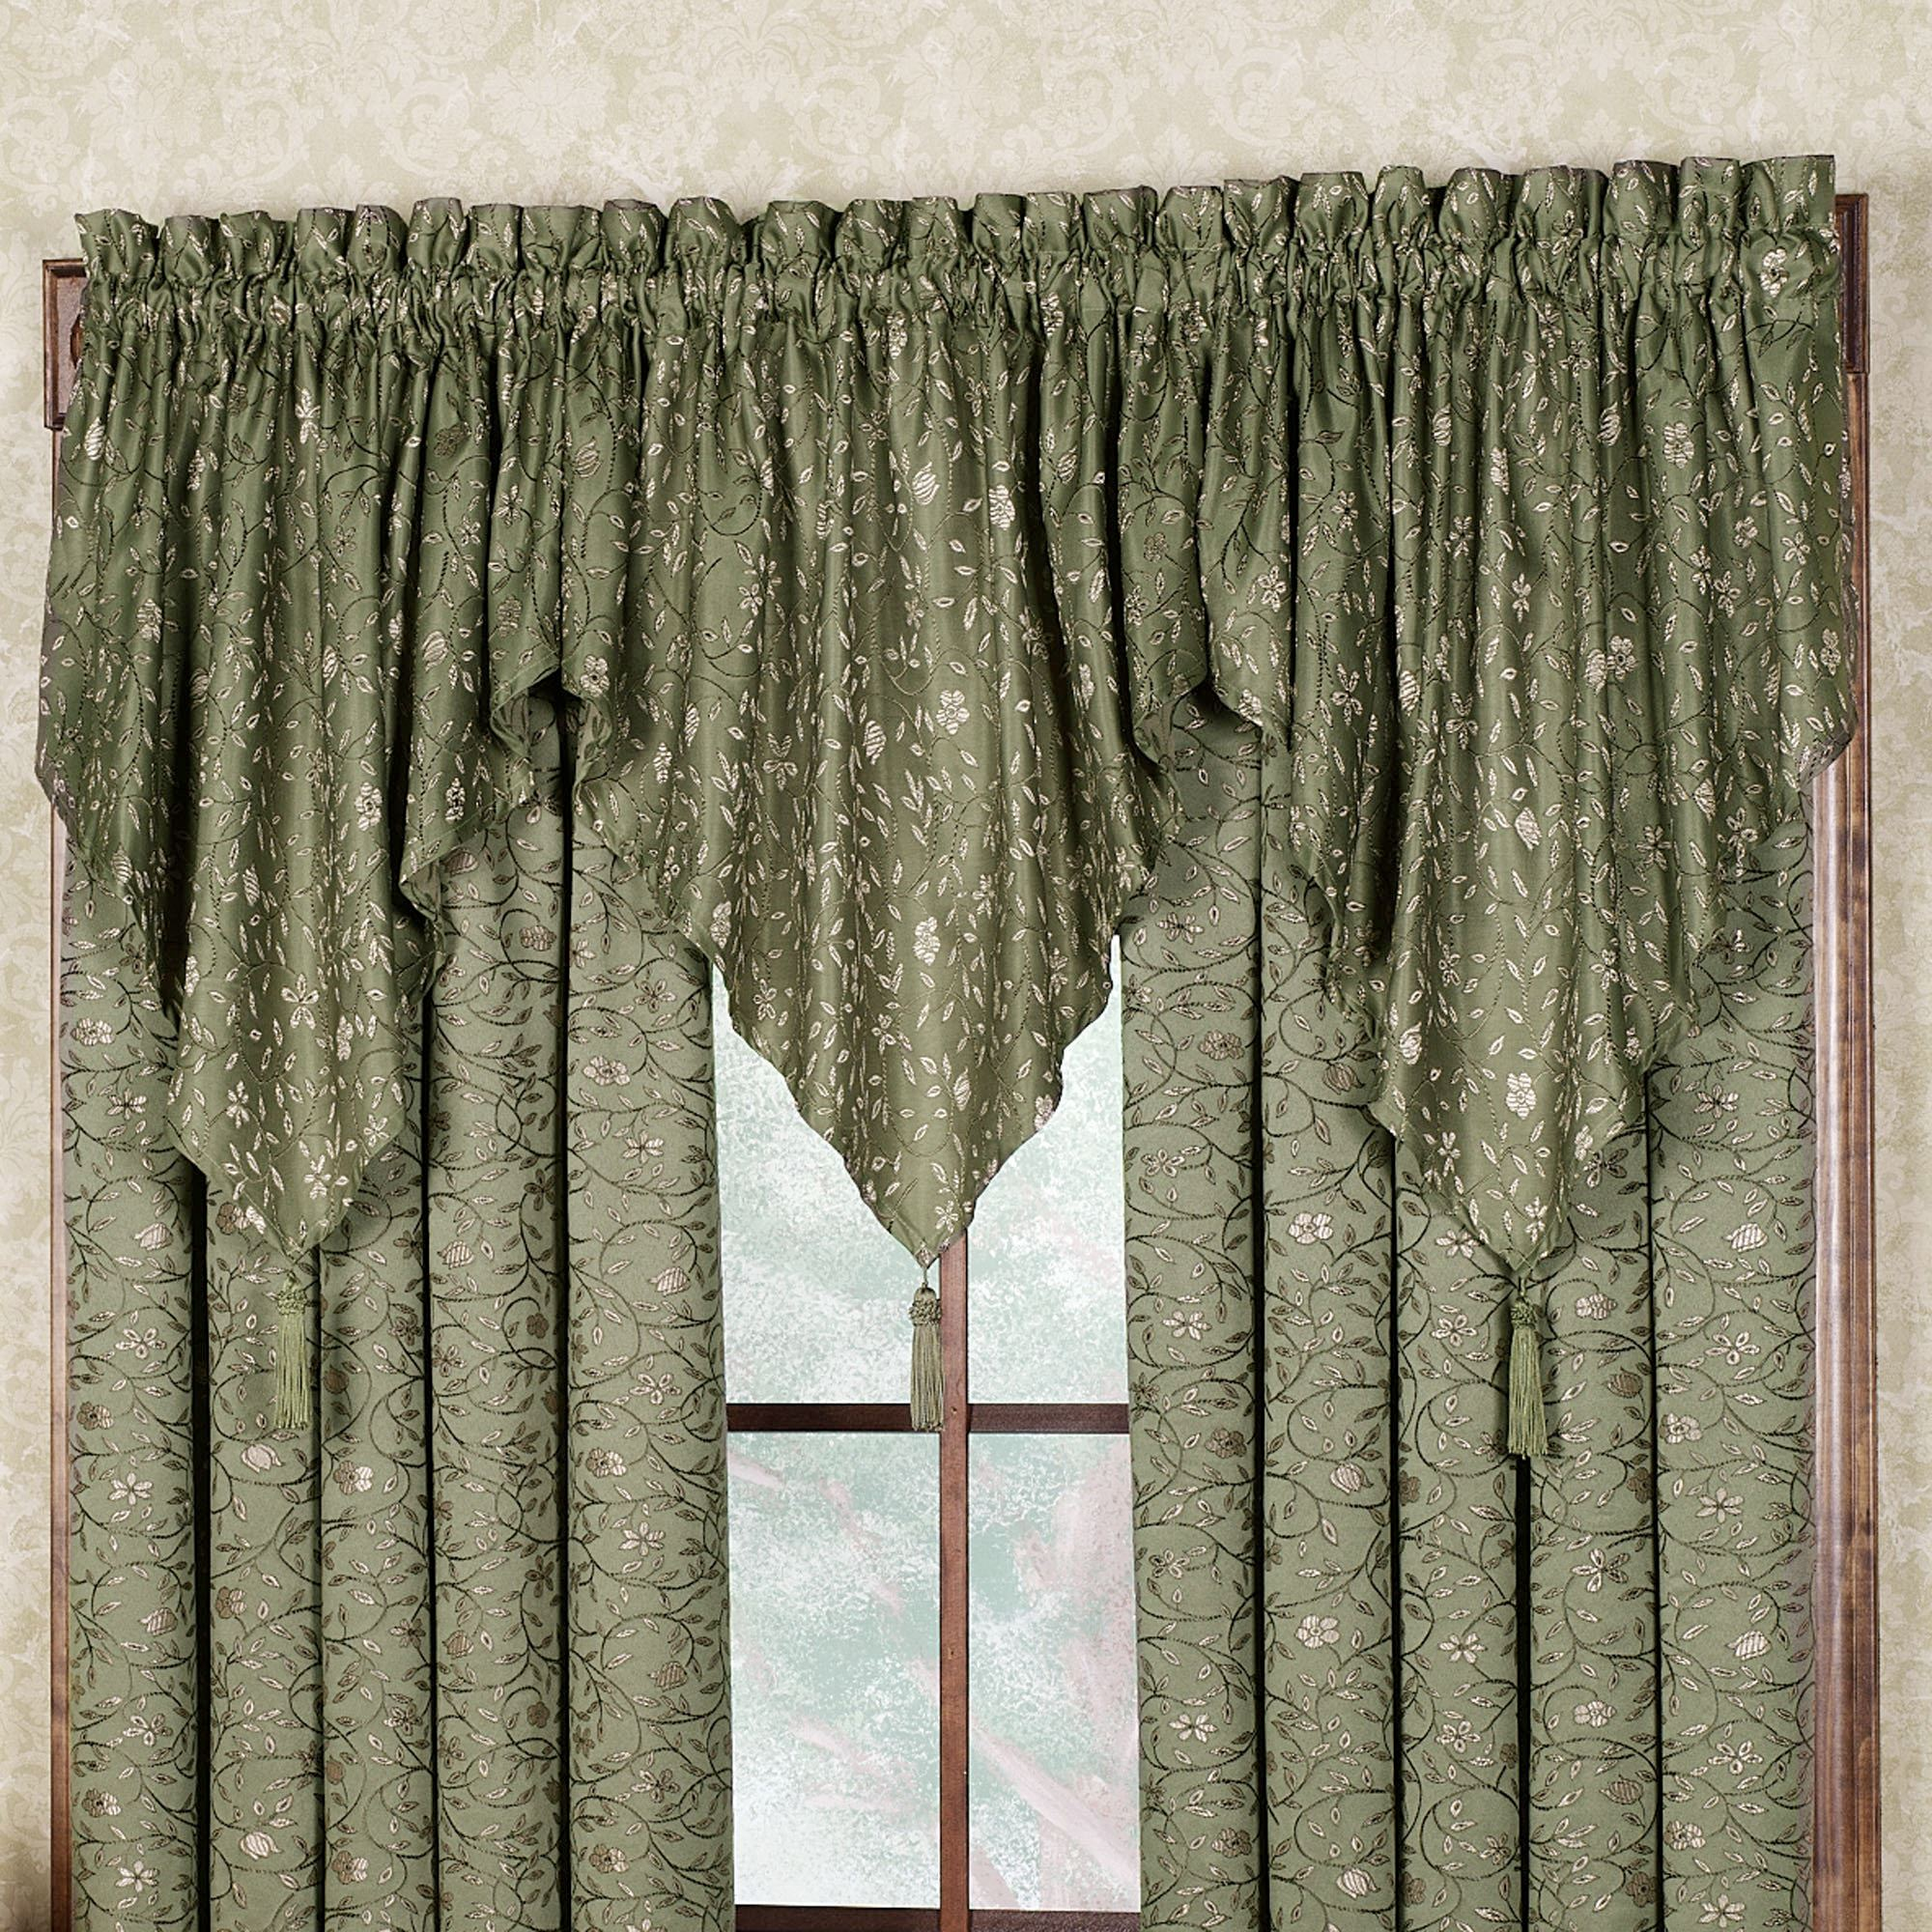 style types so you color the type stunning with your right valances and want window of go it decor match looking fabric choose valance if a make home curtains ascot